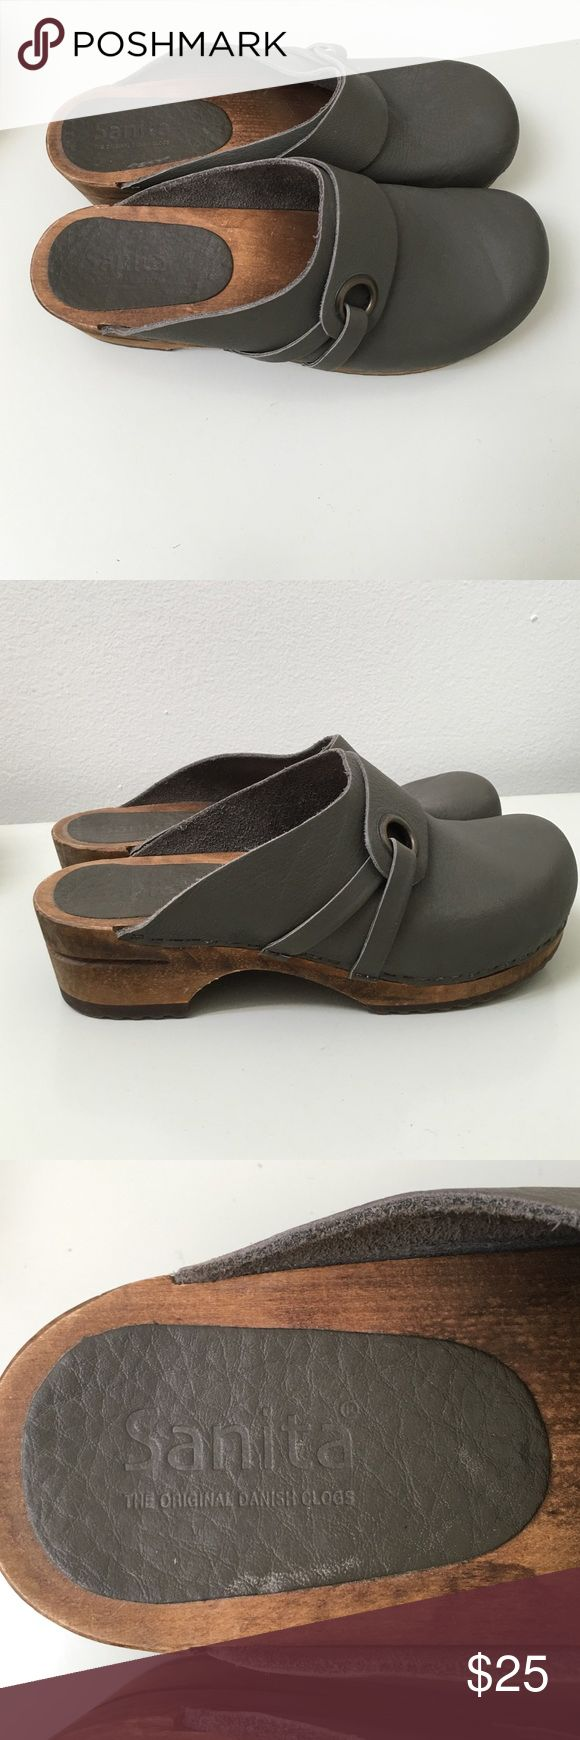 Sanita Clogs-The Original Danish Clog Dark grey leather and wood Sanita Shoes Sandals